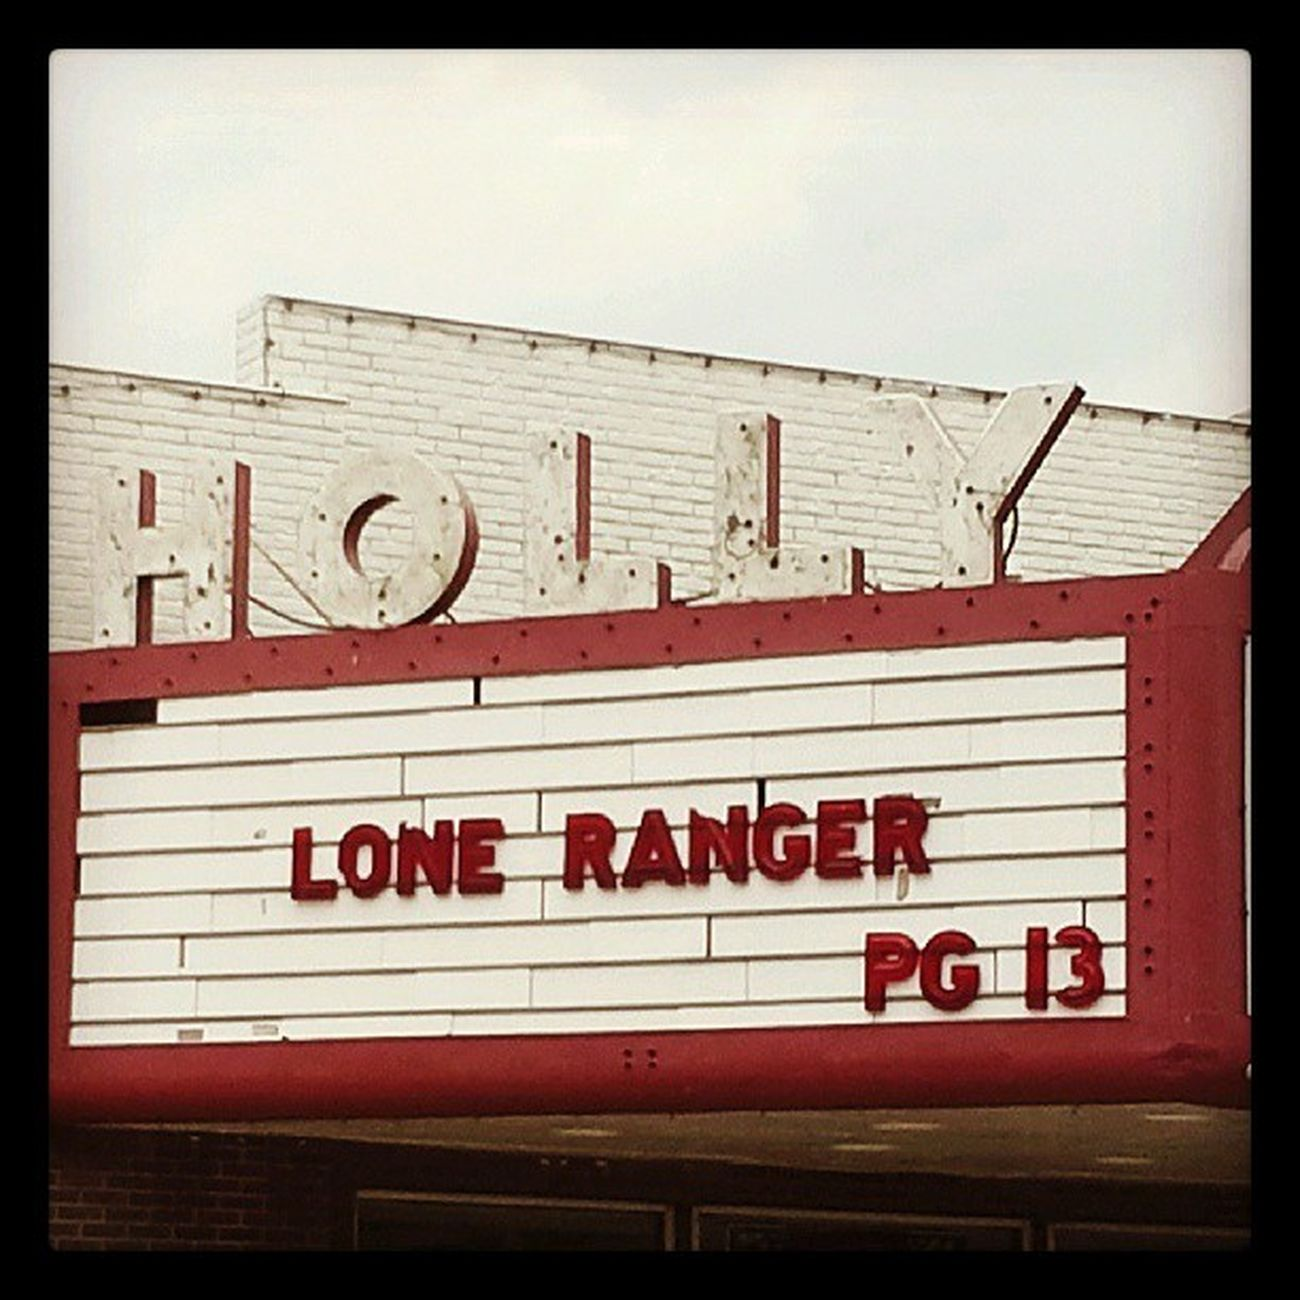 Holly Movies Theater Cinema Signage Neon Show Loneranger Marquee Movietheater Courtstreet Cinematreasures Signfixation Savethesigns Beatricenebraska